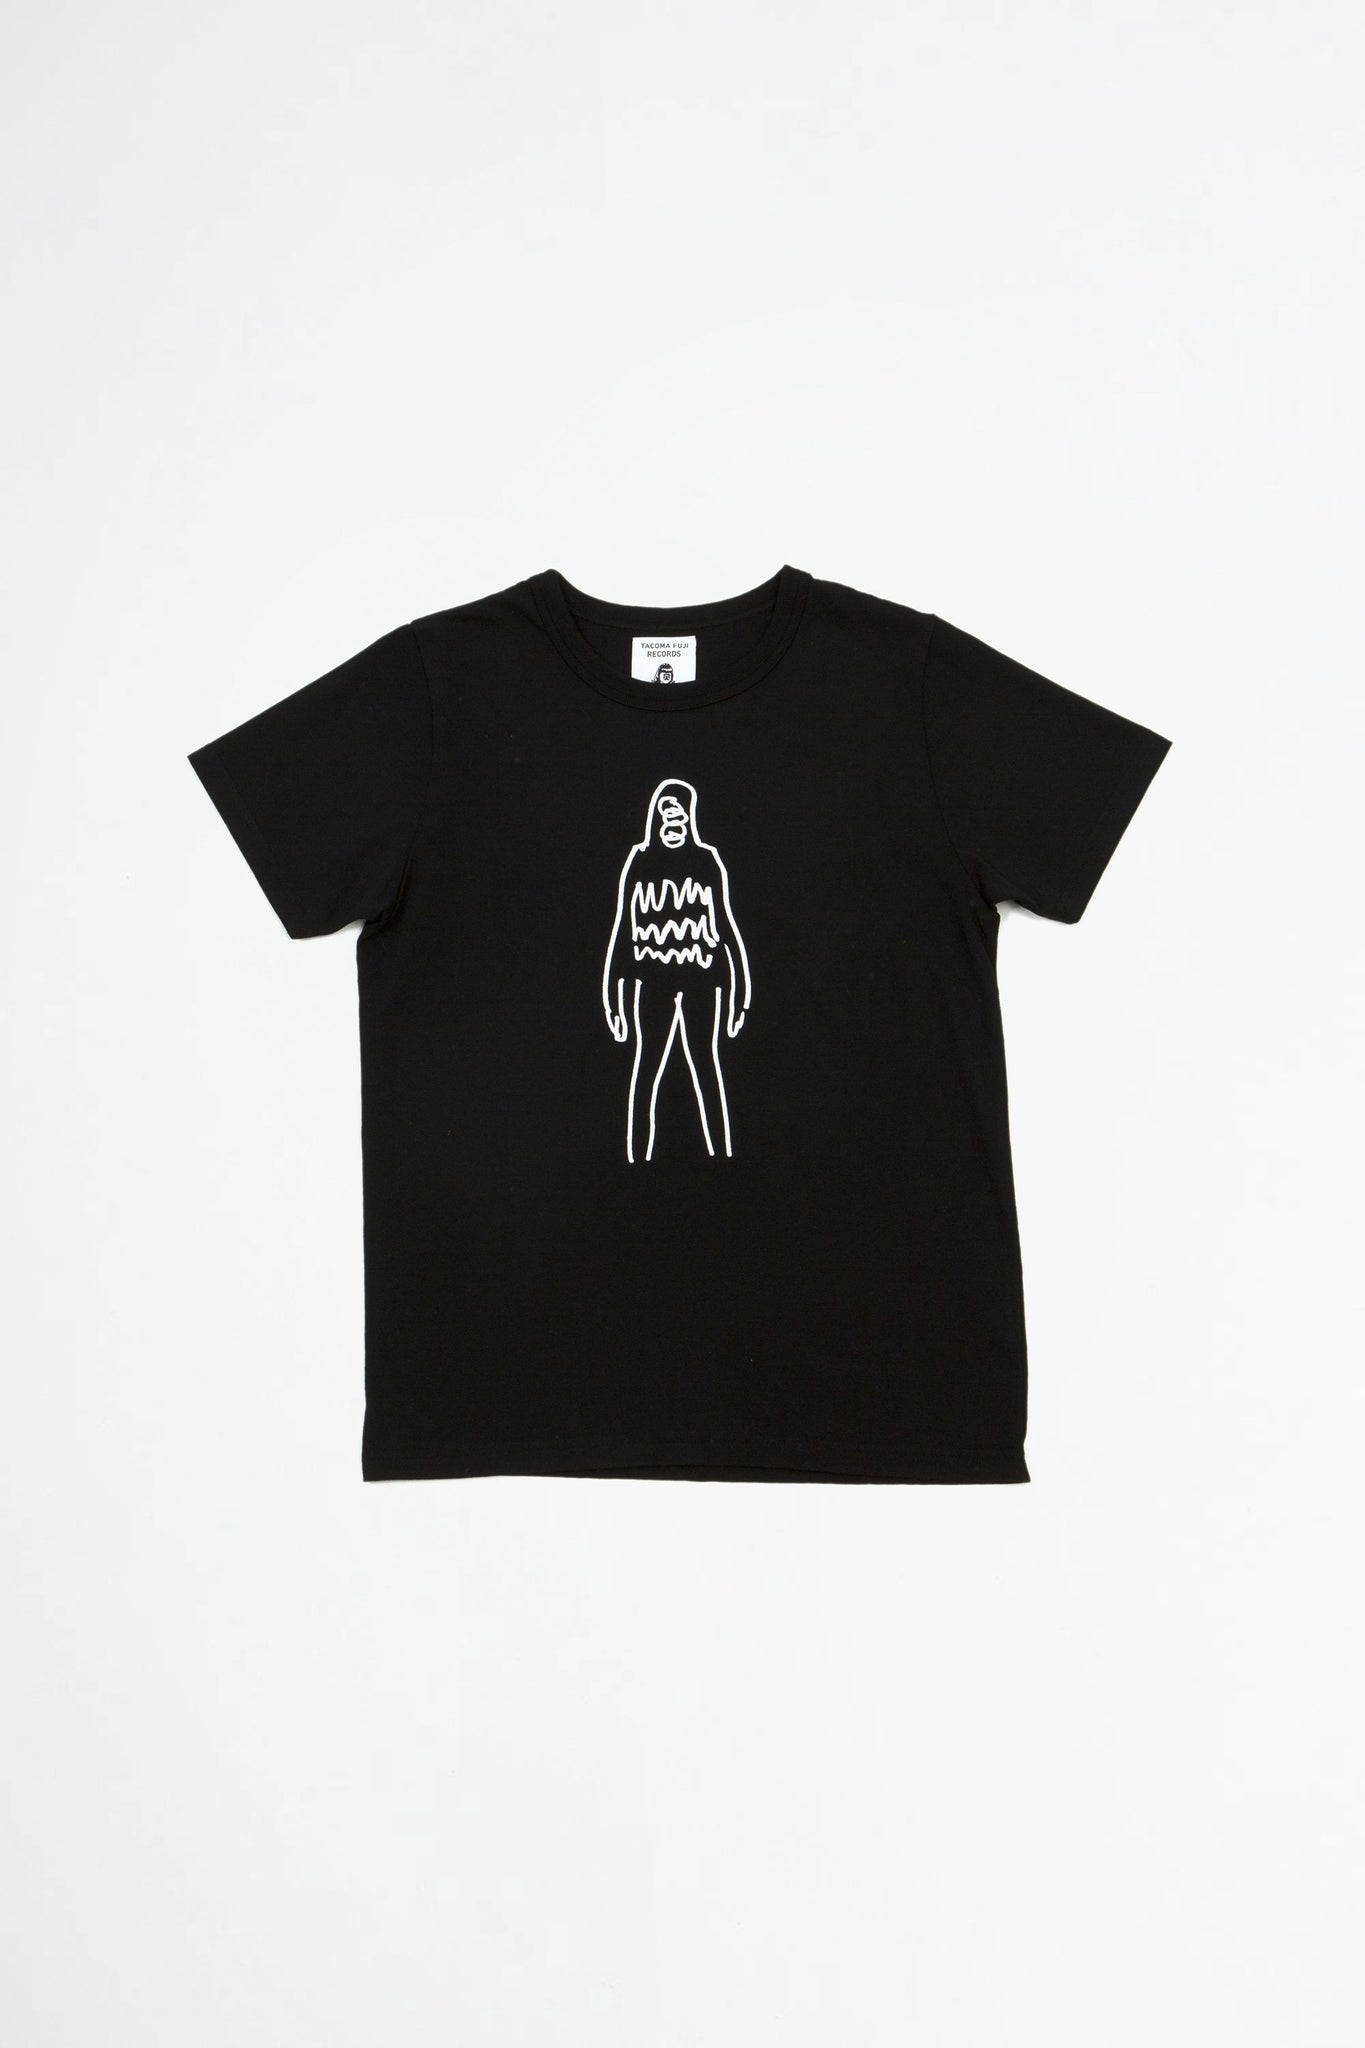 Bacoa t-shirt black